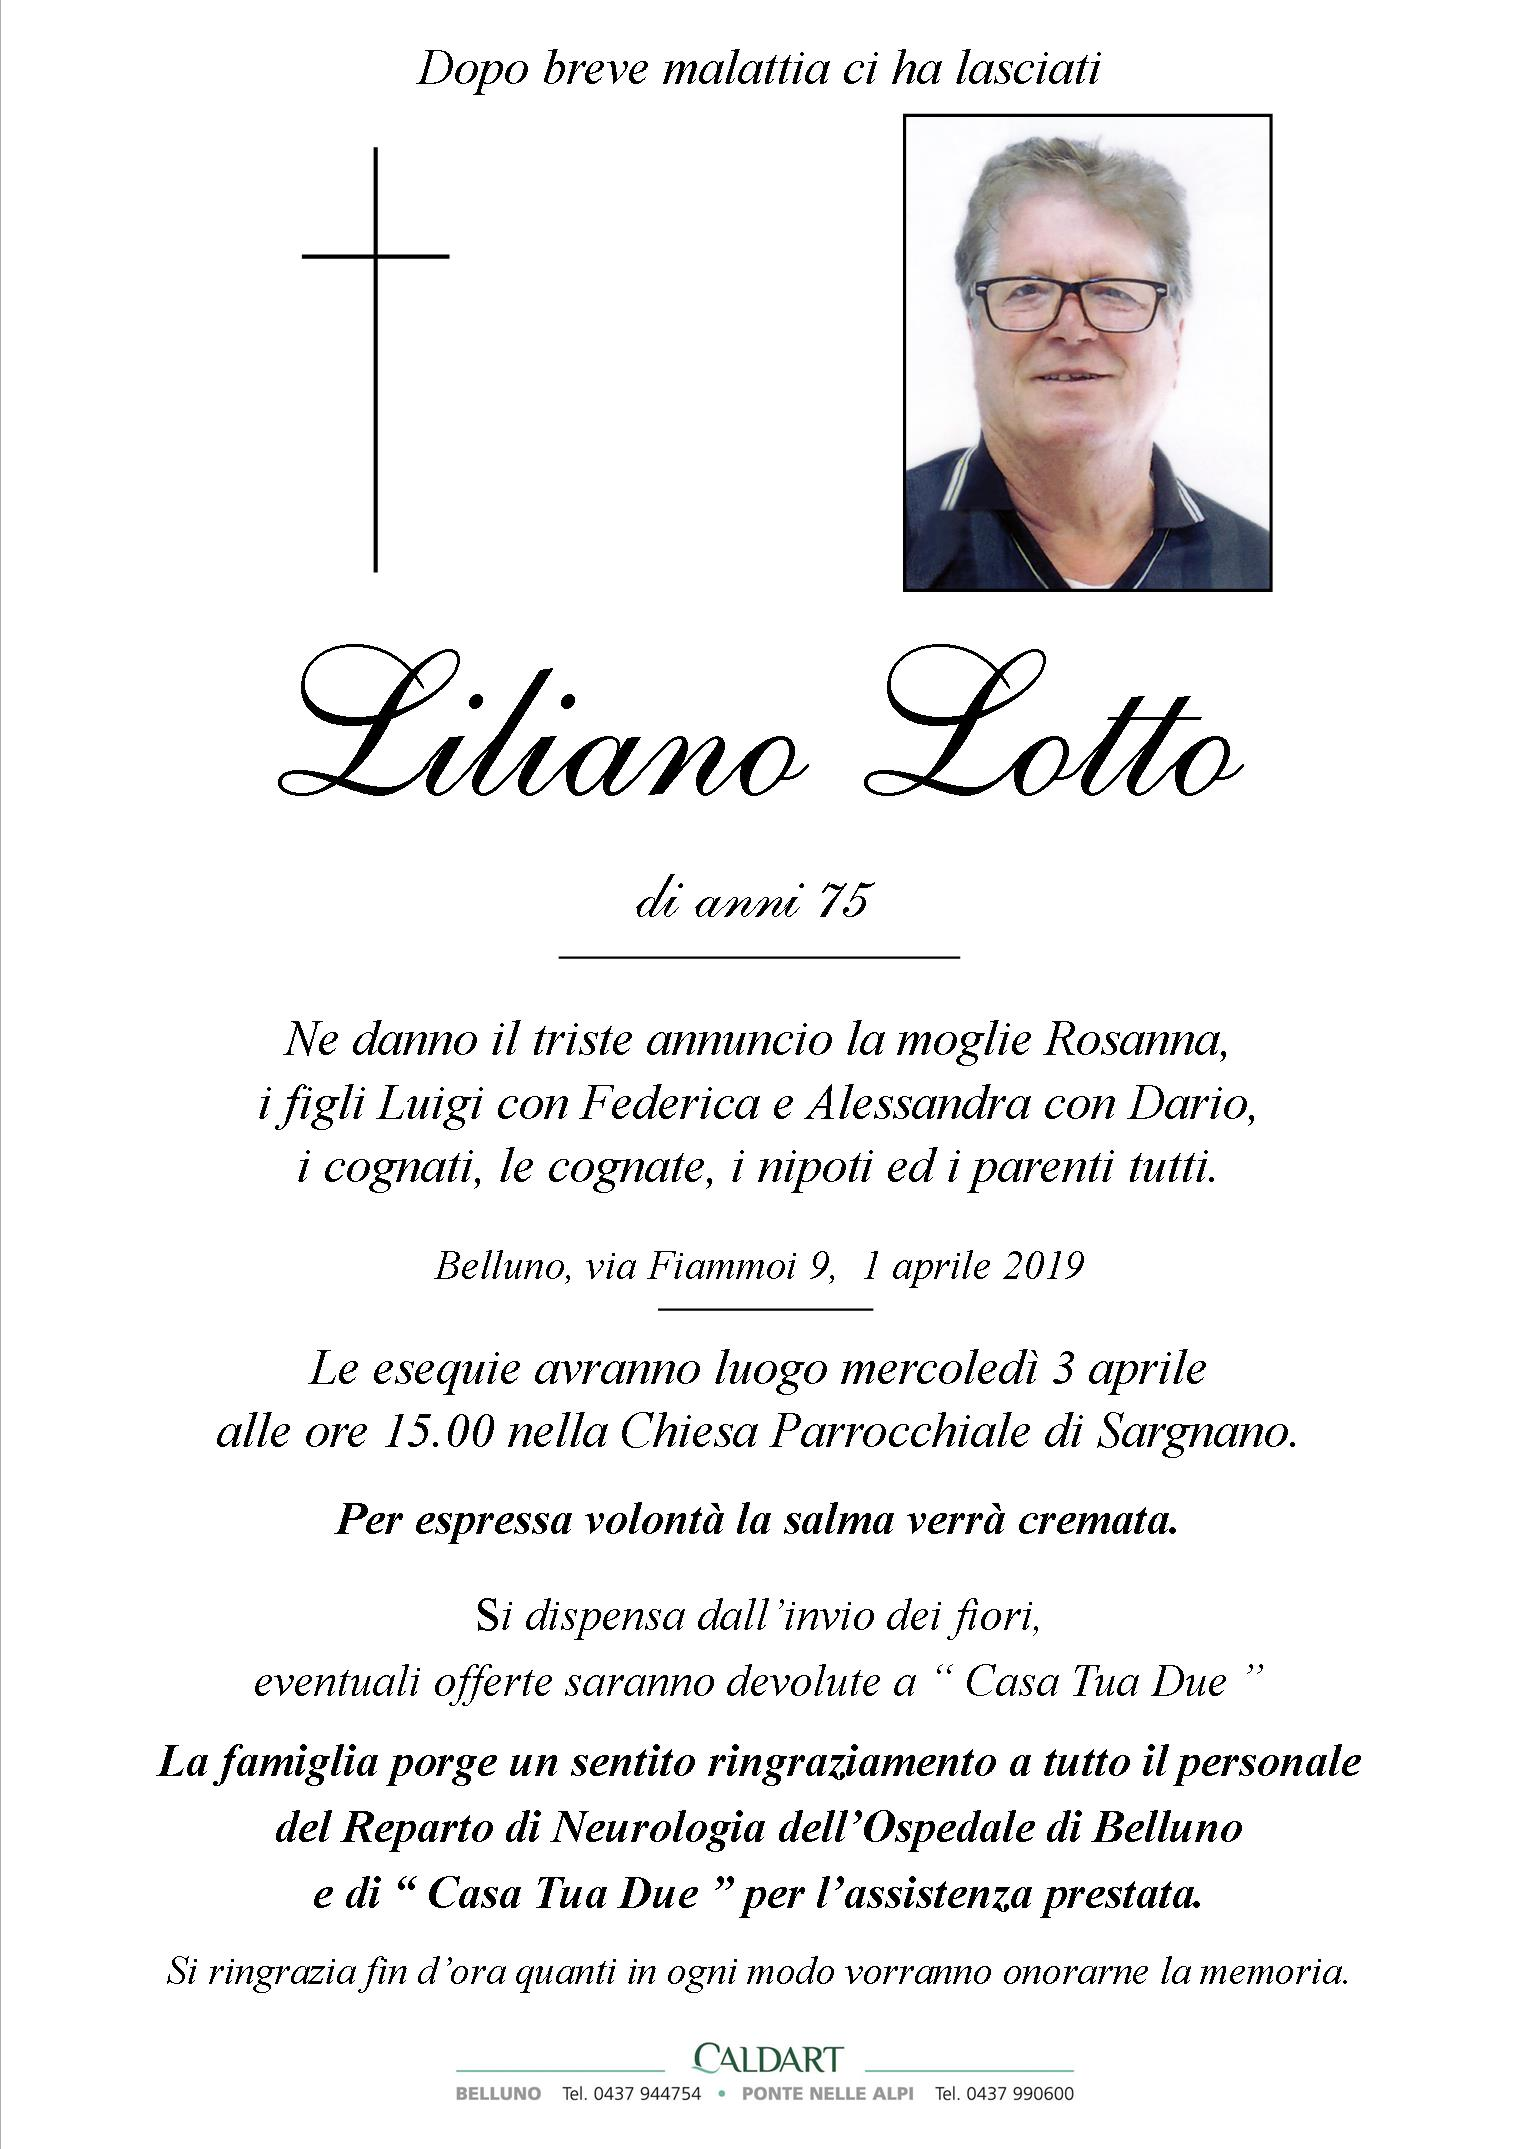 Lotto Liliano